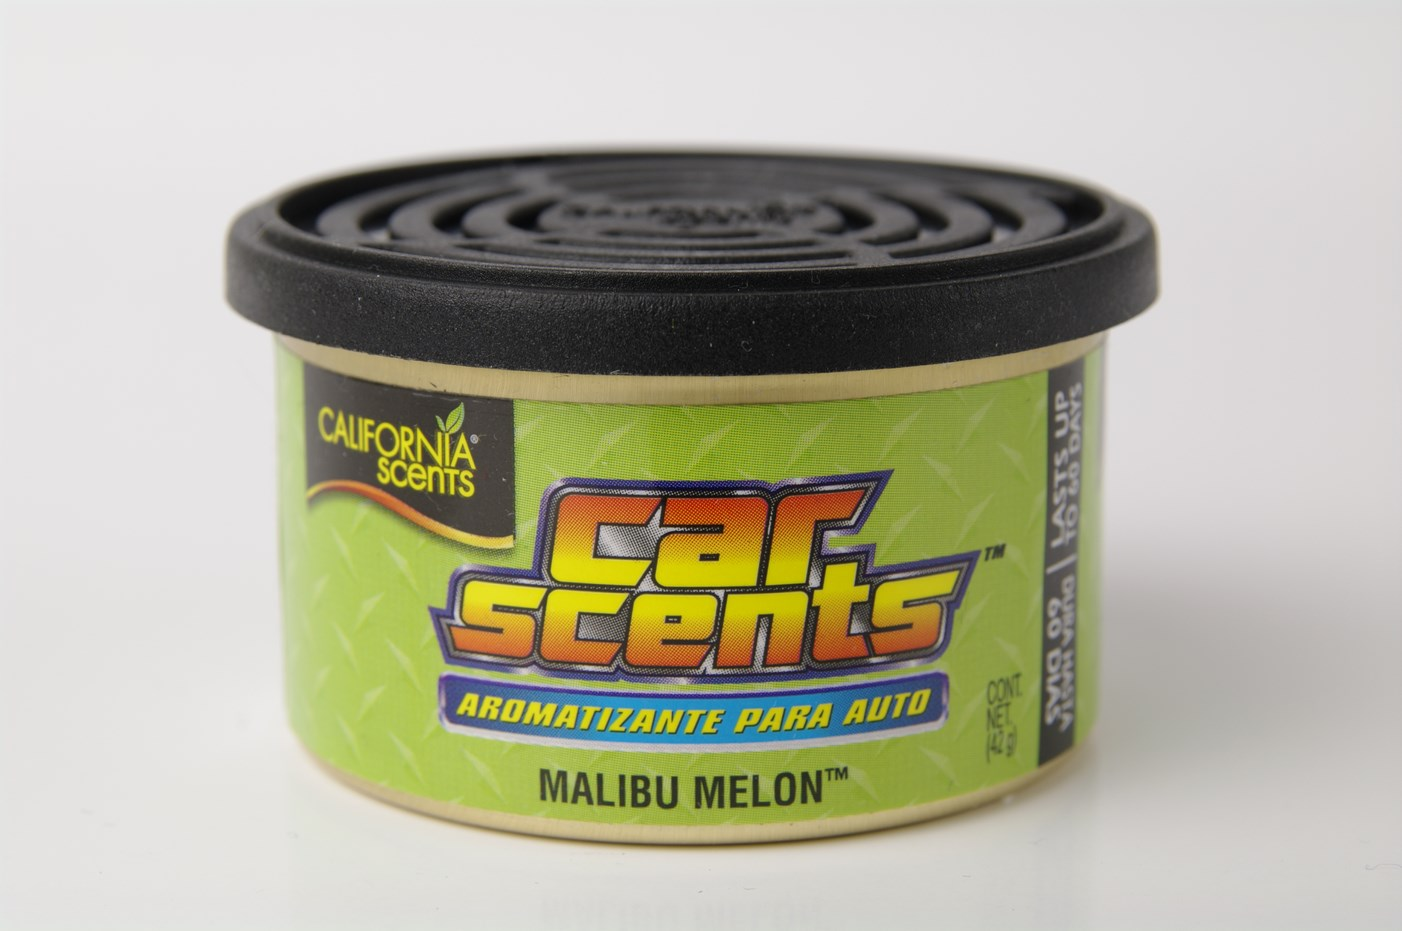 California Scents Car Scents - Meloun (Malibu Melon)  42 g